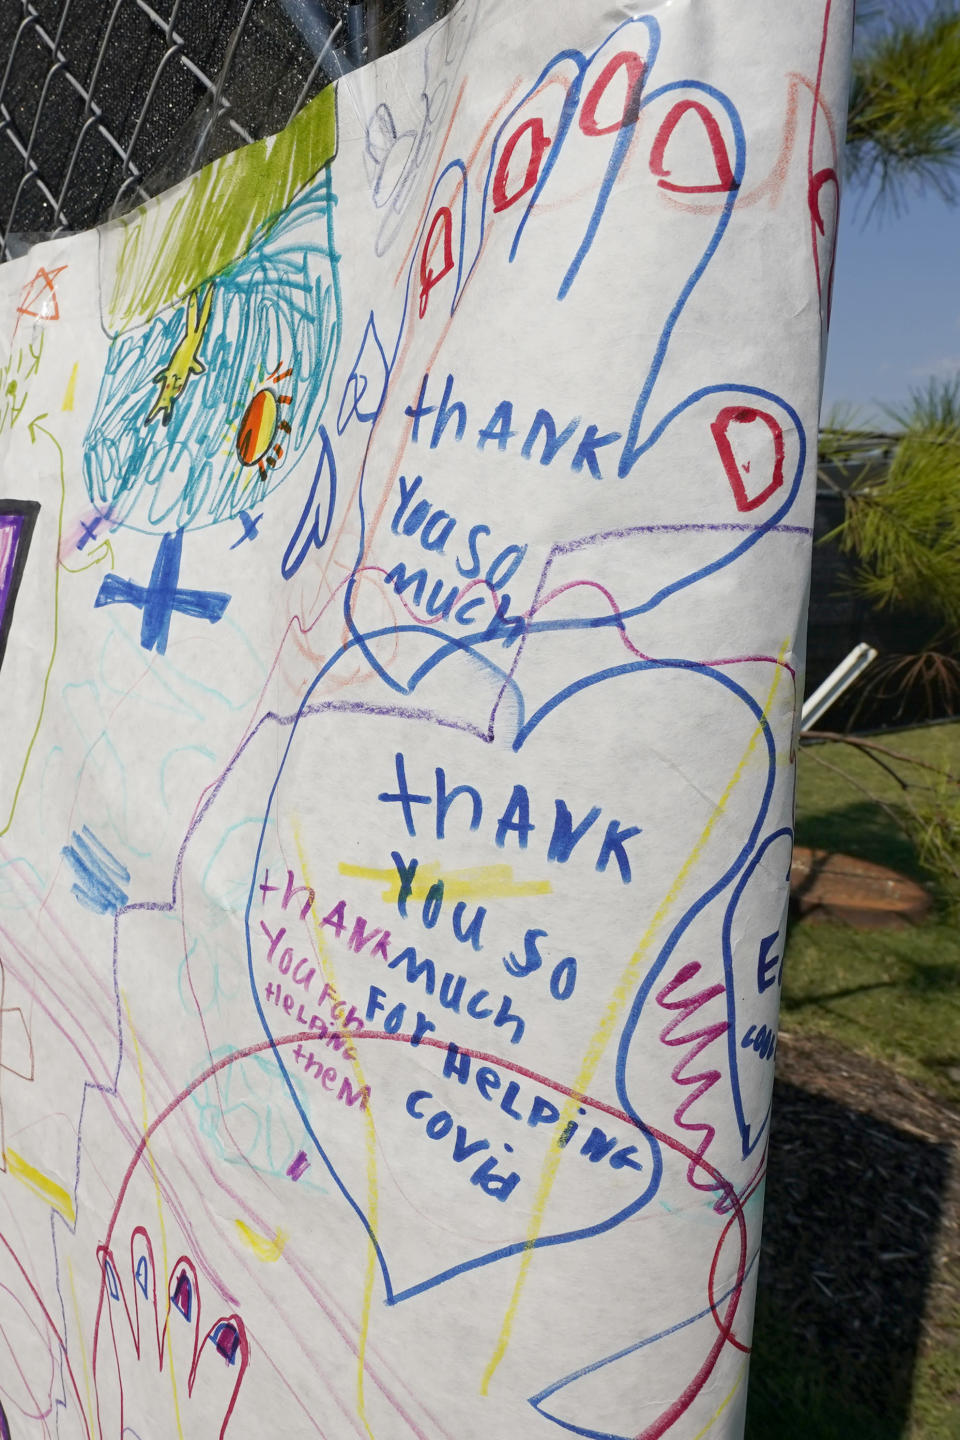 An oversized poster, drawn by the school children of an area Christian school thanking the medical workers with both Samaritan's Purse Missions and the University of Mississippi Medical Center, decorates the entrance leading to a field hospital based in a covered parking lot at the medical facility, in Jackson, Miss., Wednesday, Aug. 25, 2021. (AP Photo/Rogelio V. Solis)